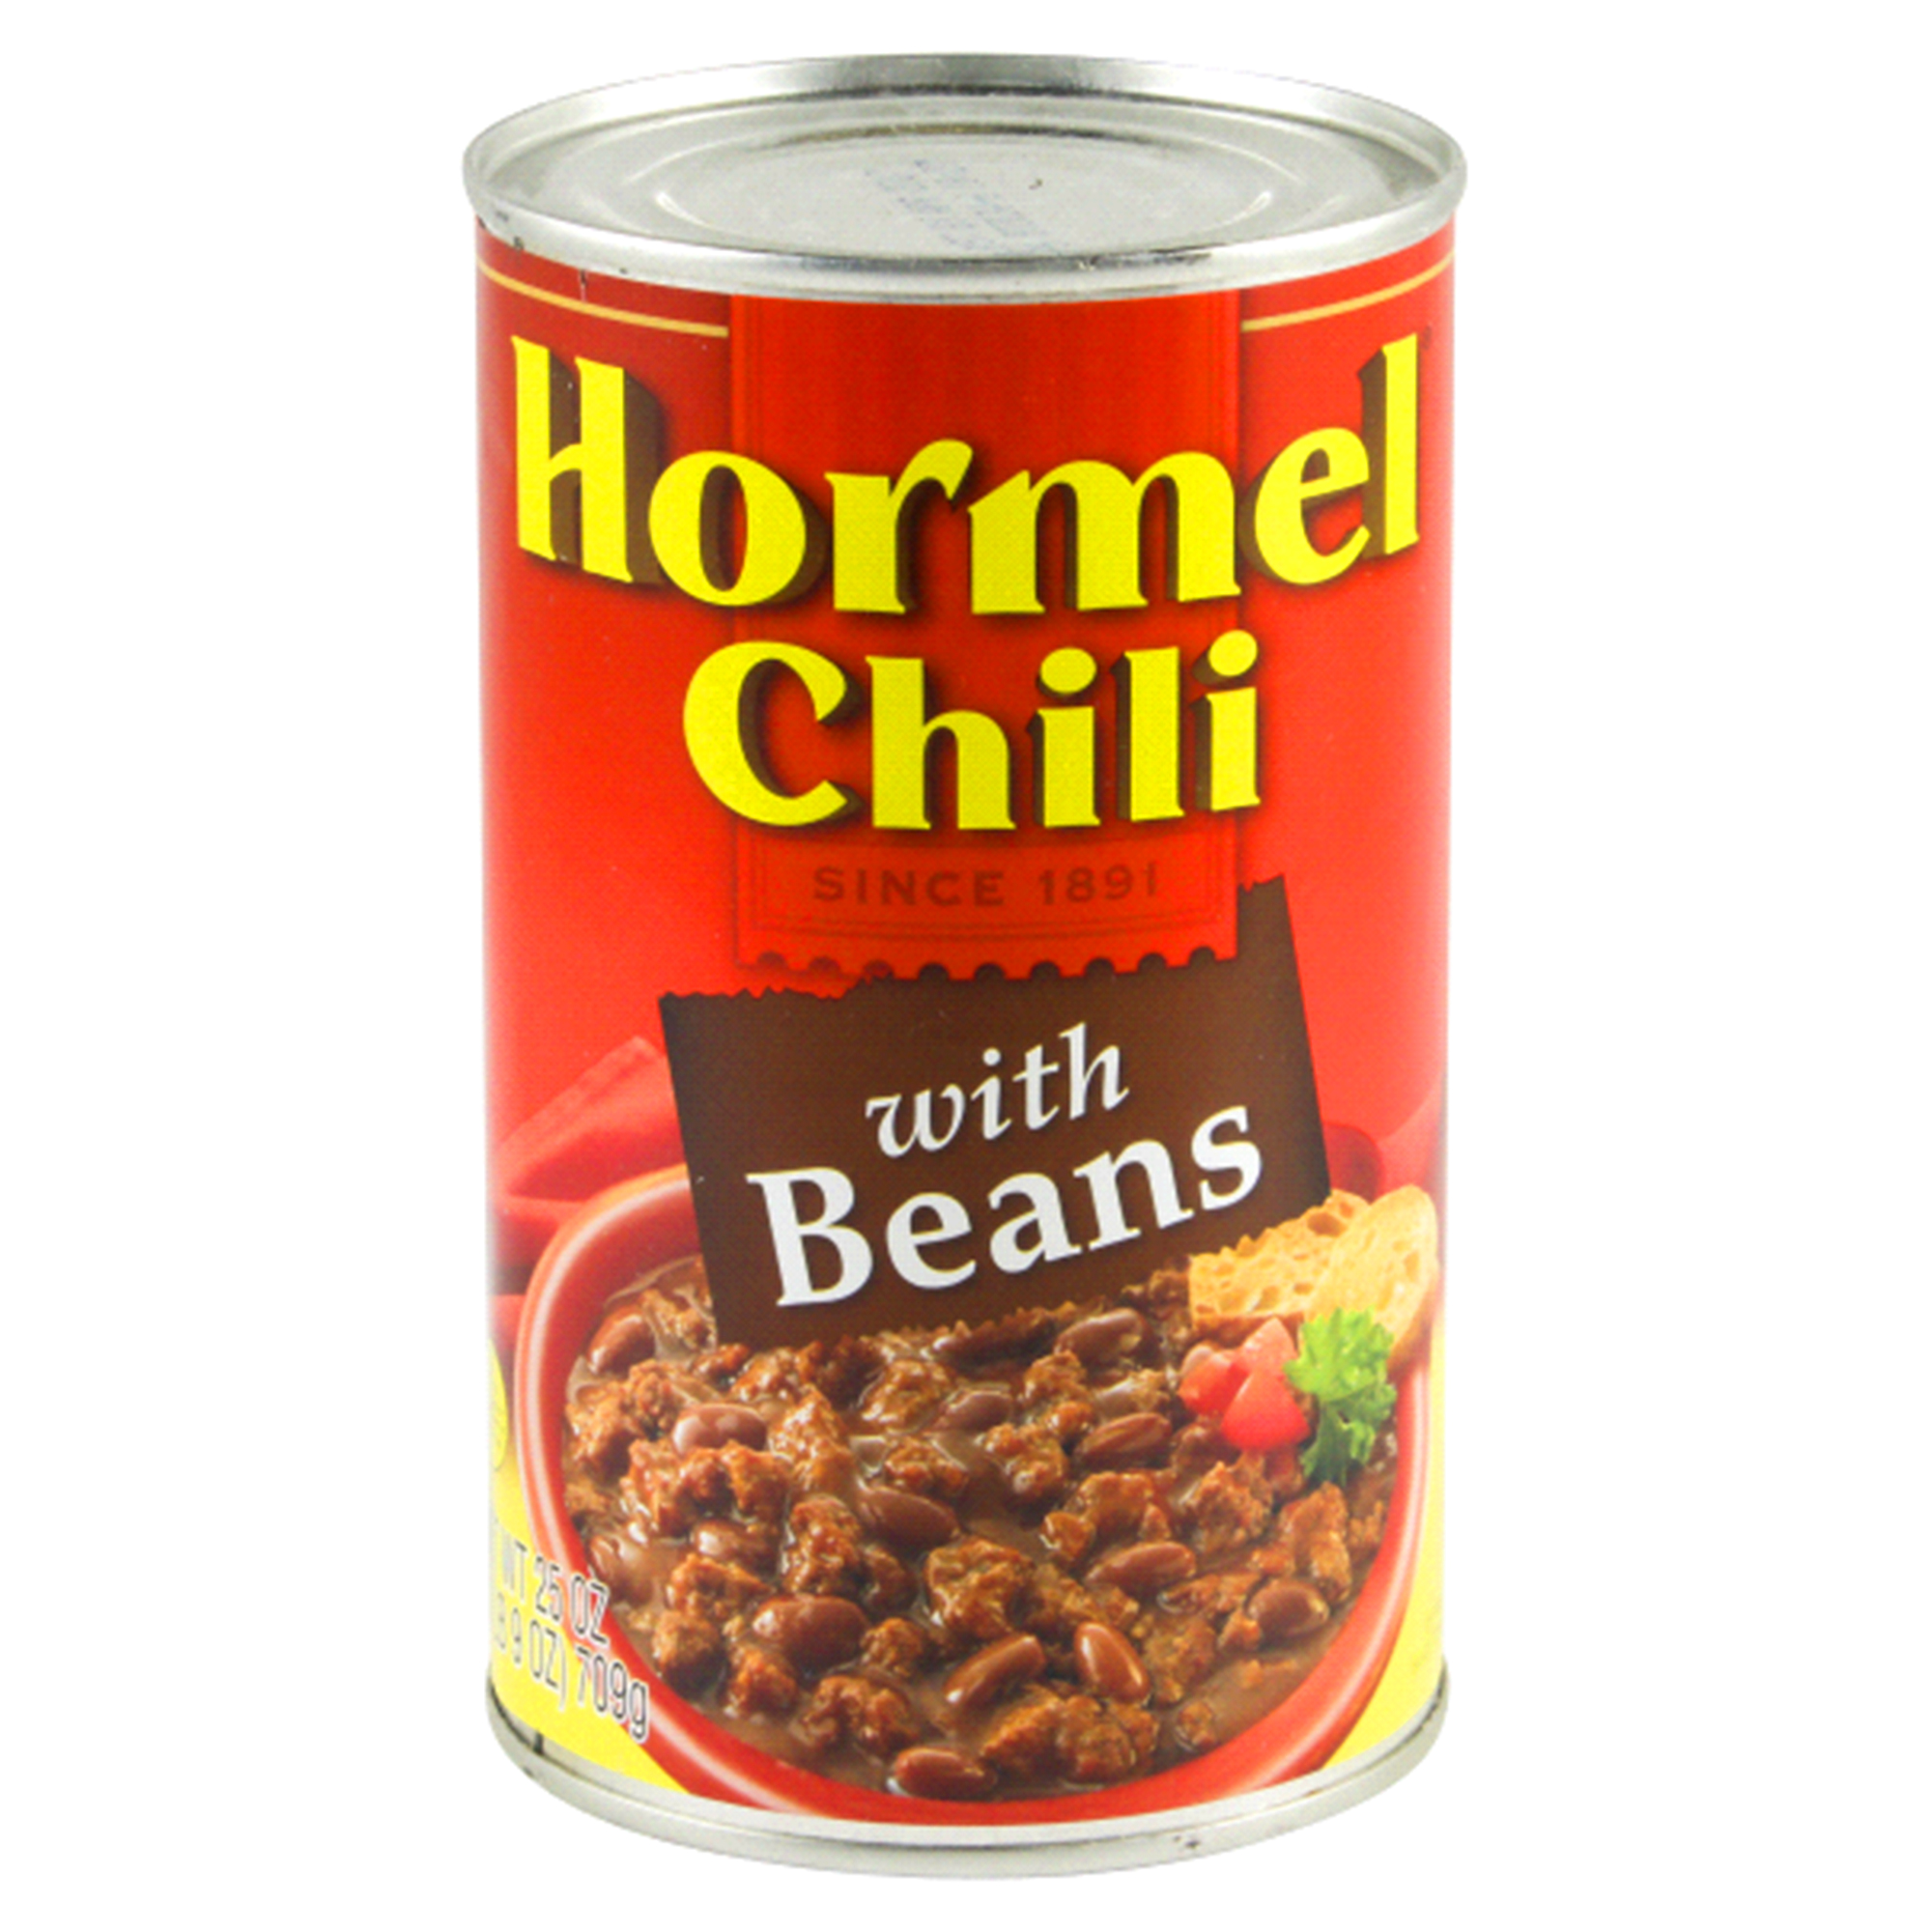 Hormel Chili with Beans, 15 Ounce